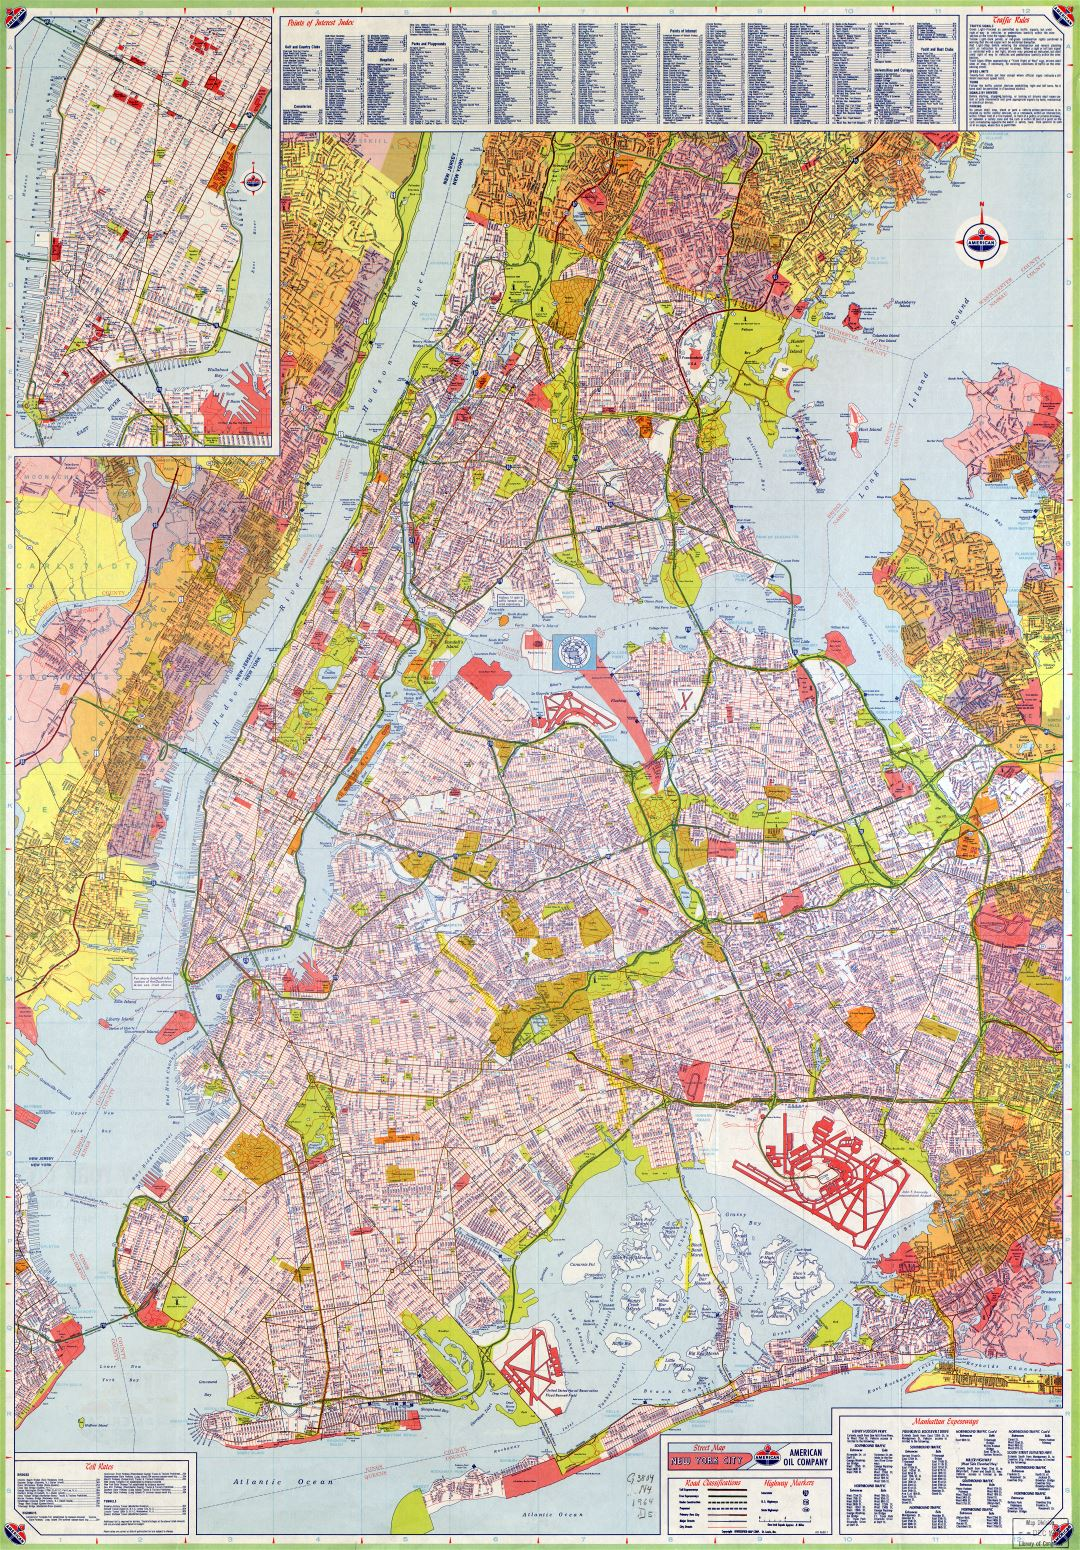 Large scale HiRes detailed full road map of New York city (USA) with all street names